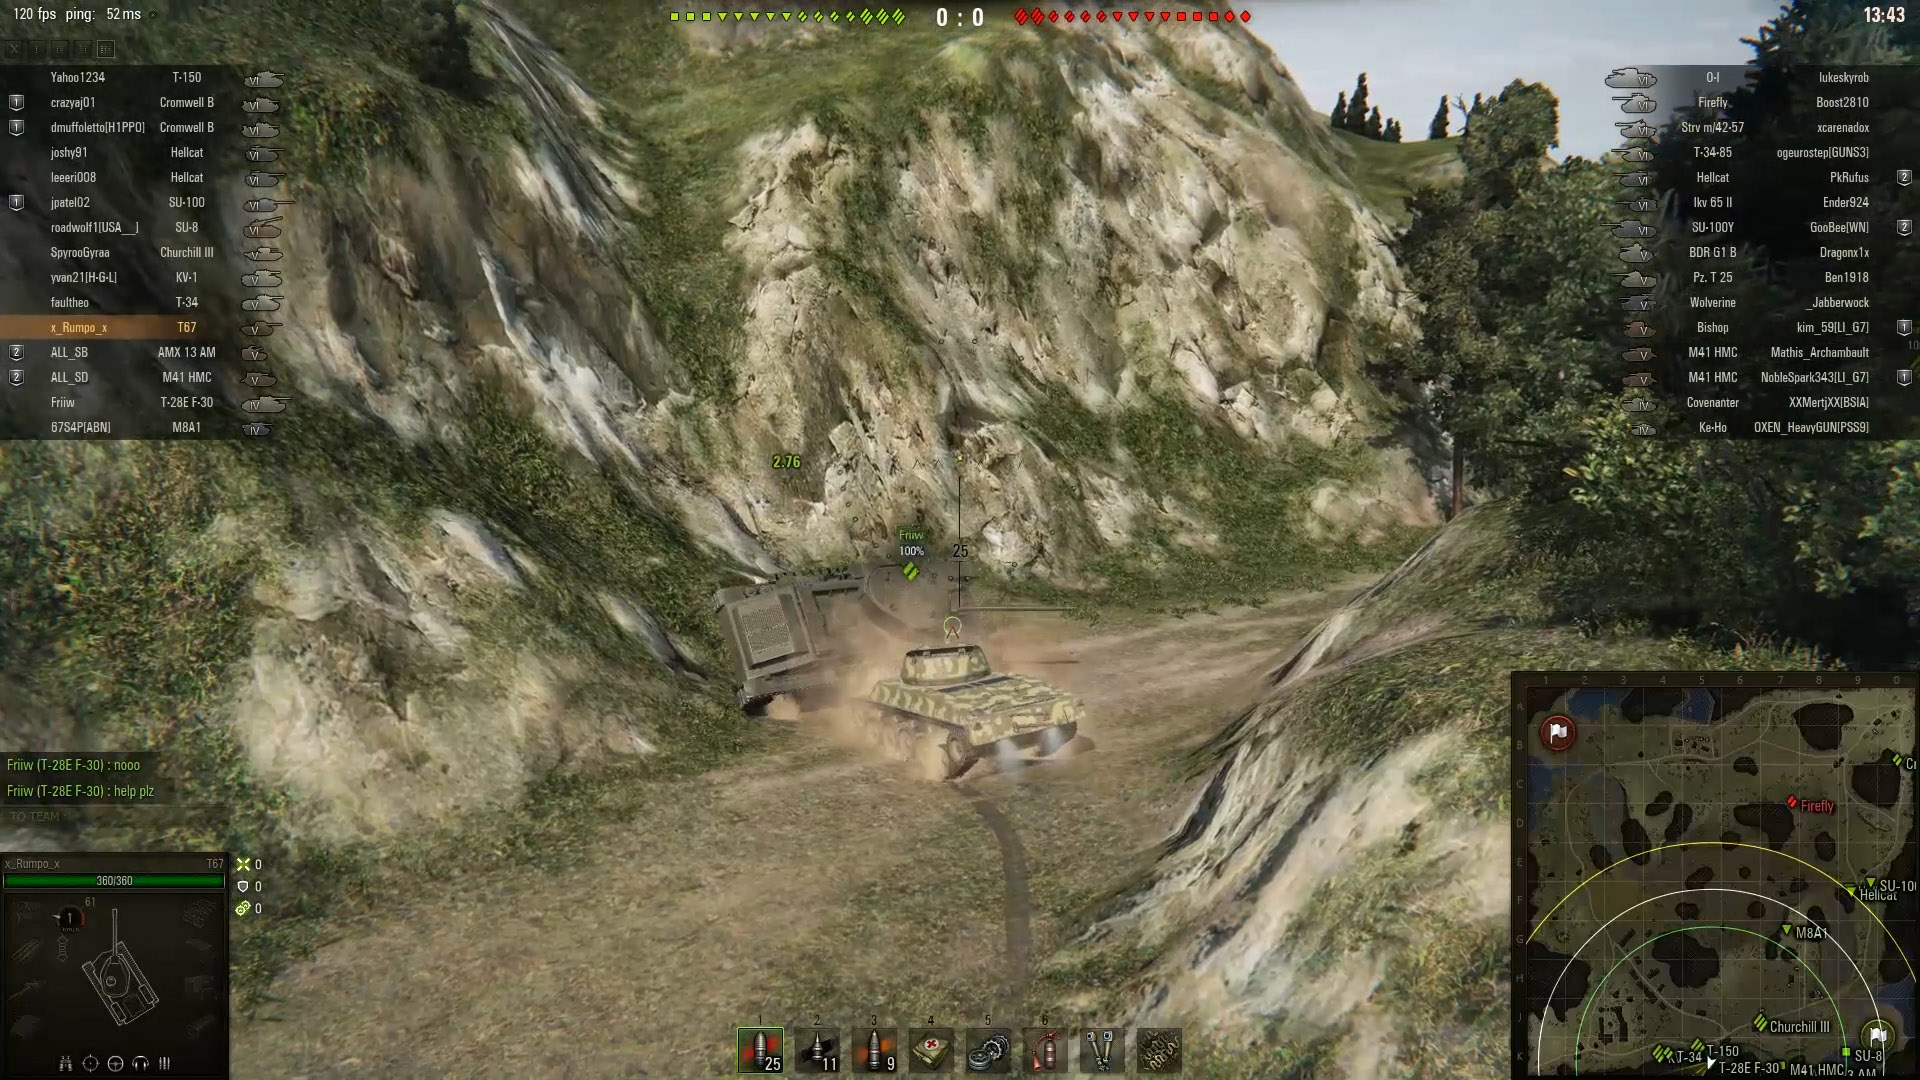 With enough speed, even the smallest of tanks can help flip an upside down tank back onto its tracks in World of Tanks.